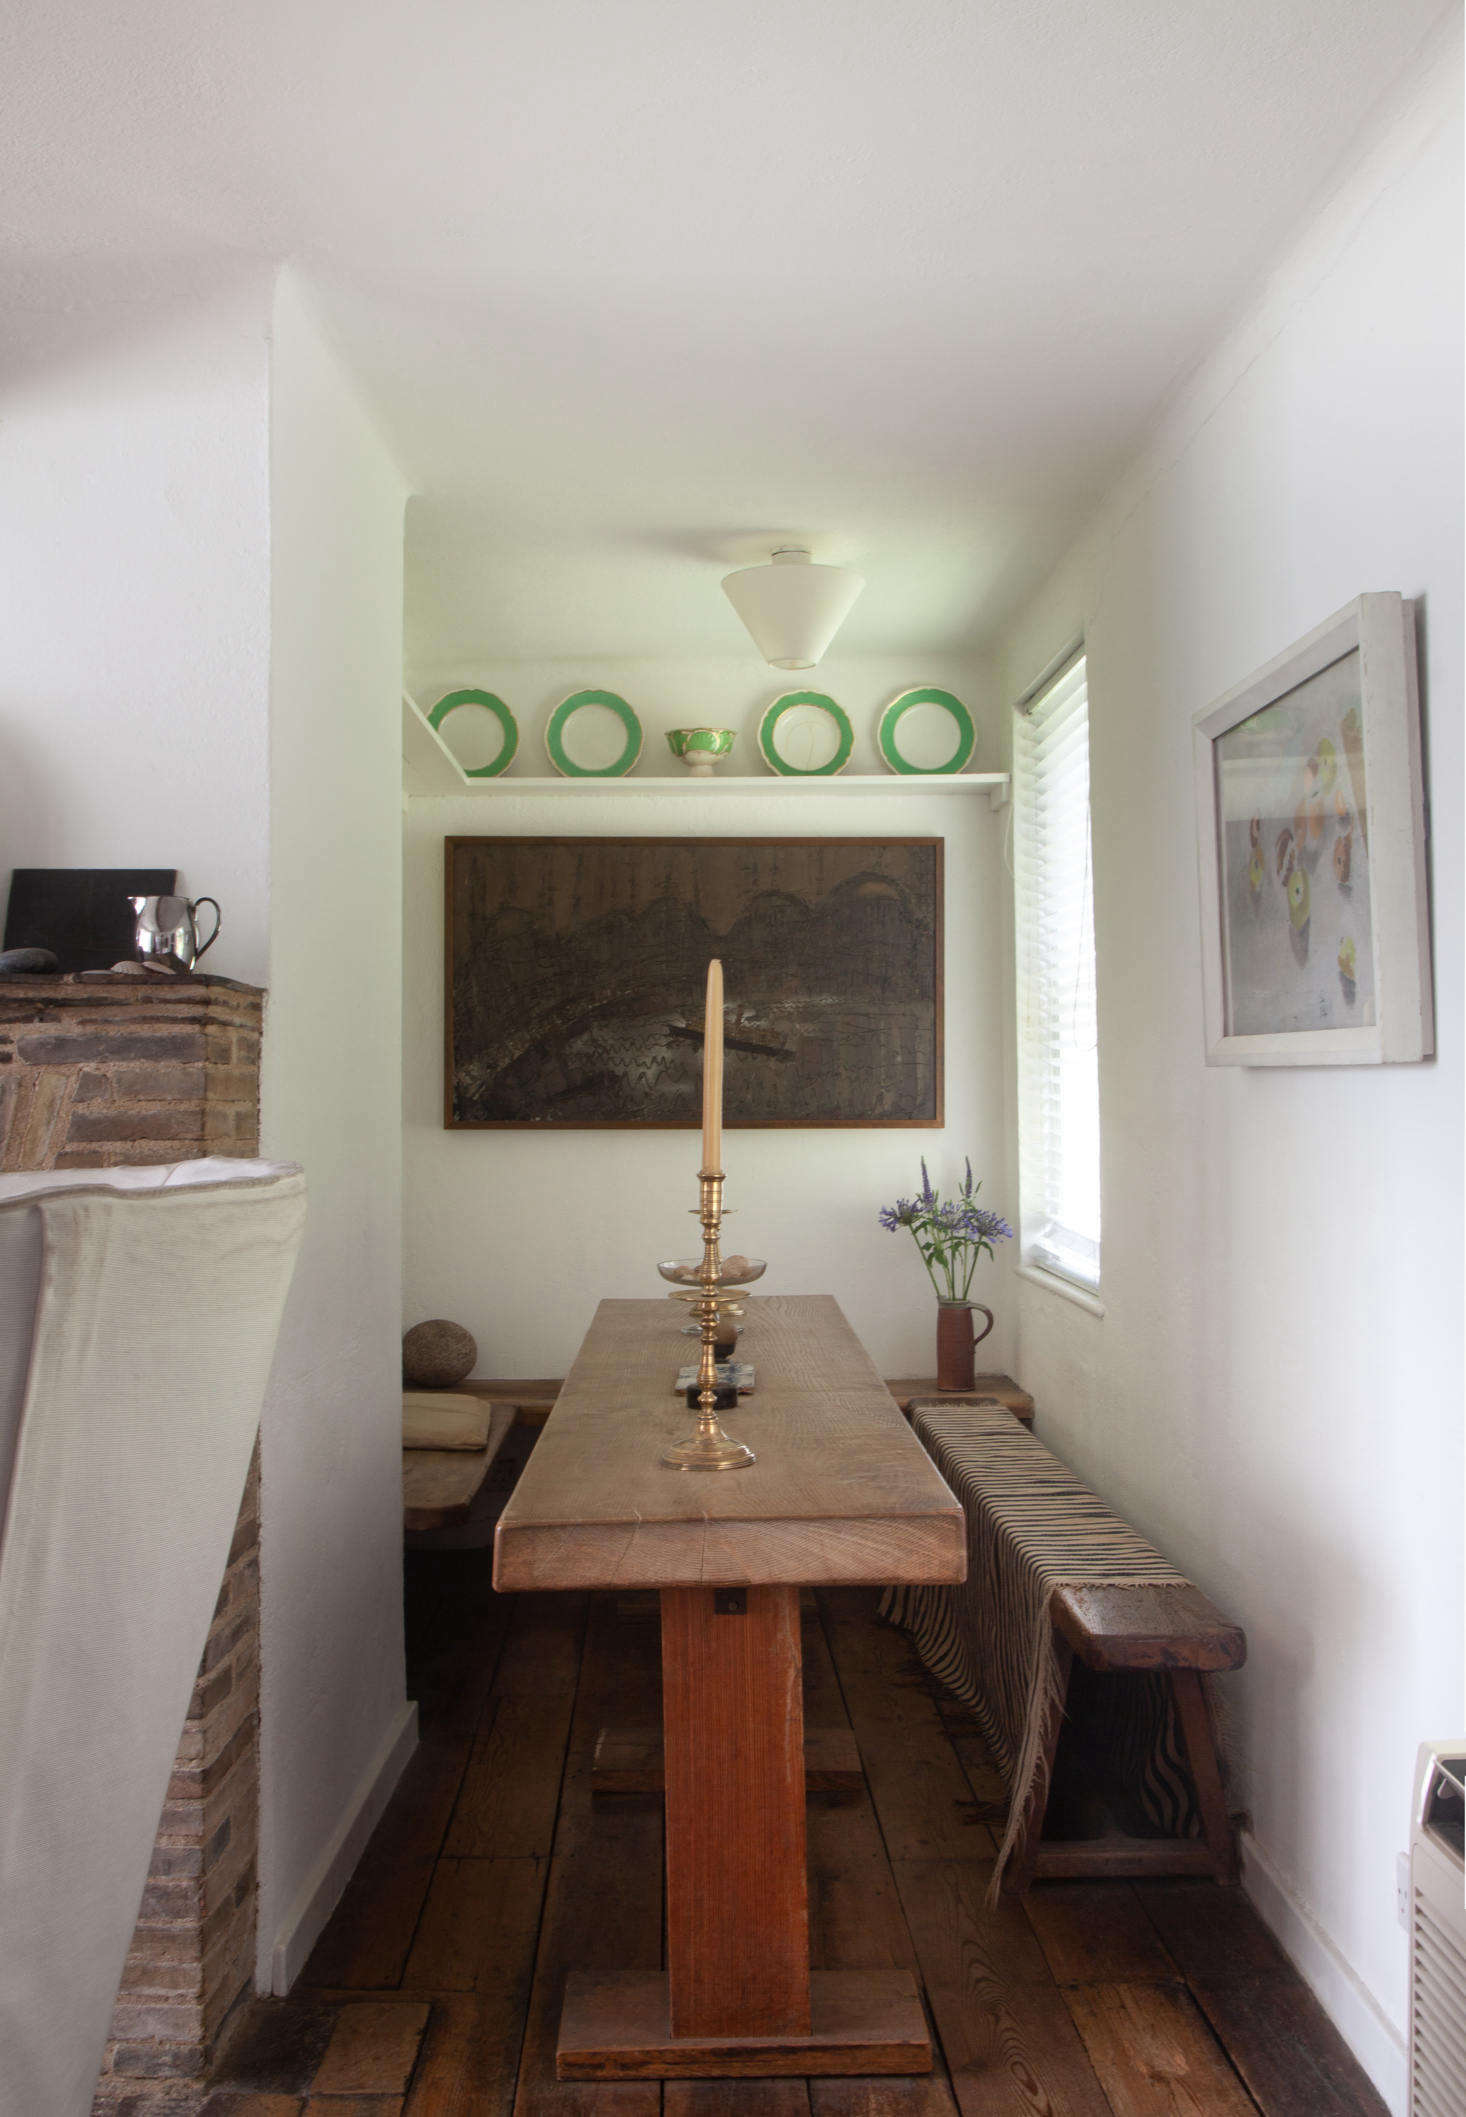 A dining room corner in the original cottage includes a slender table and a textile-draped bench.